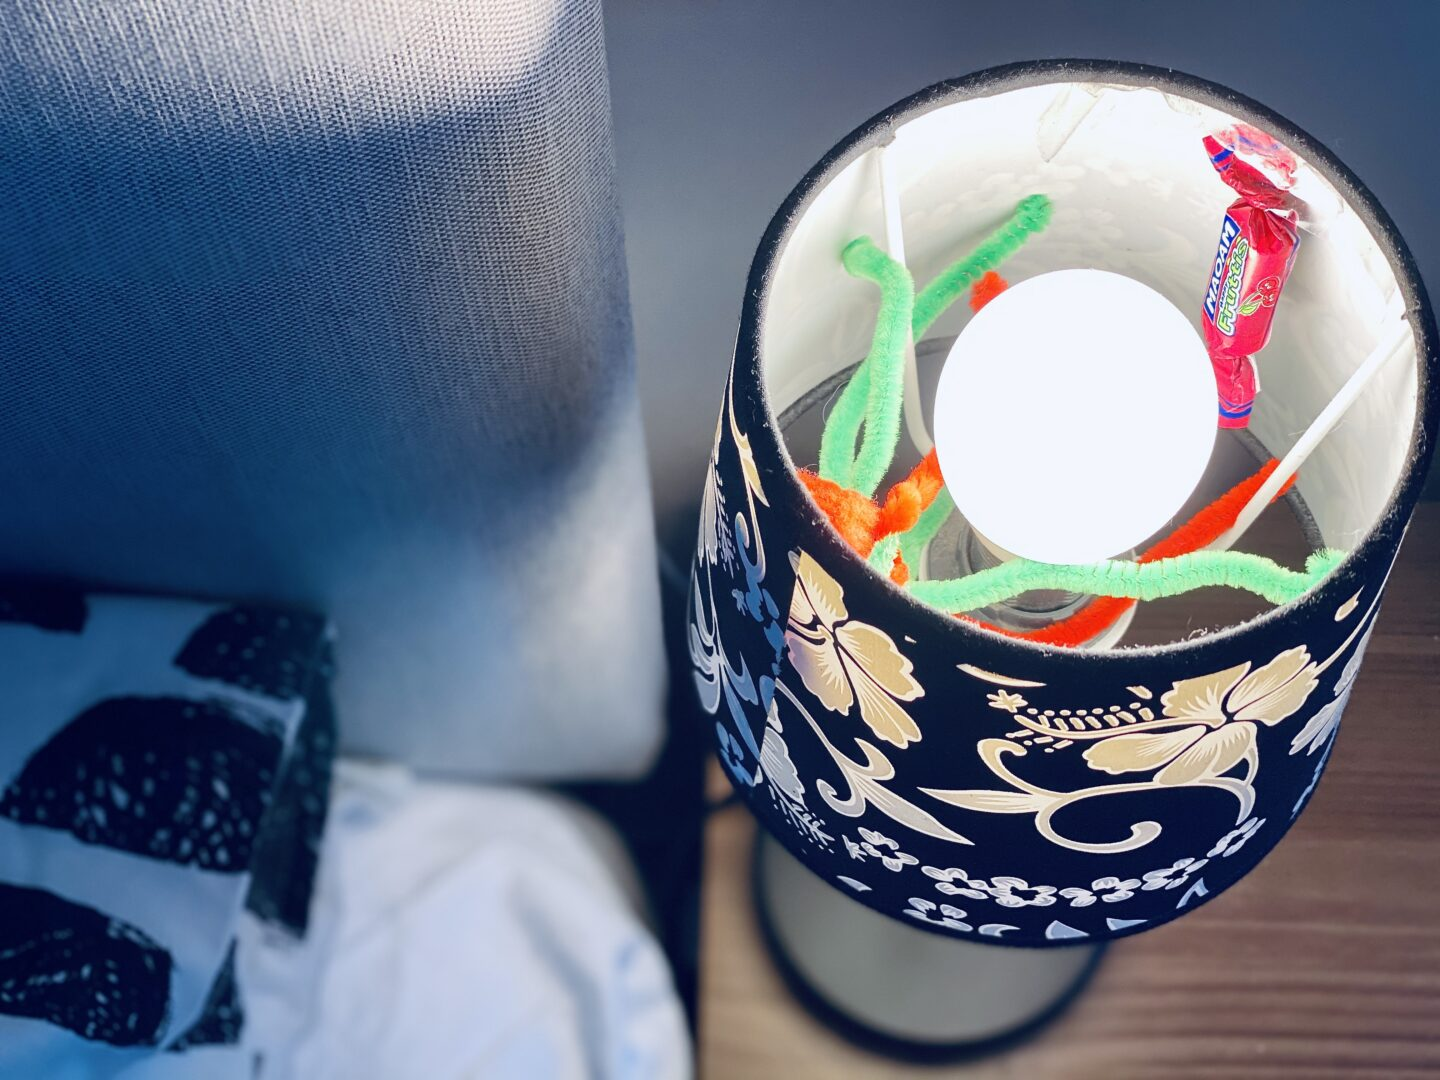 A pipe cleaner spider and Maoam inside a lampshade